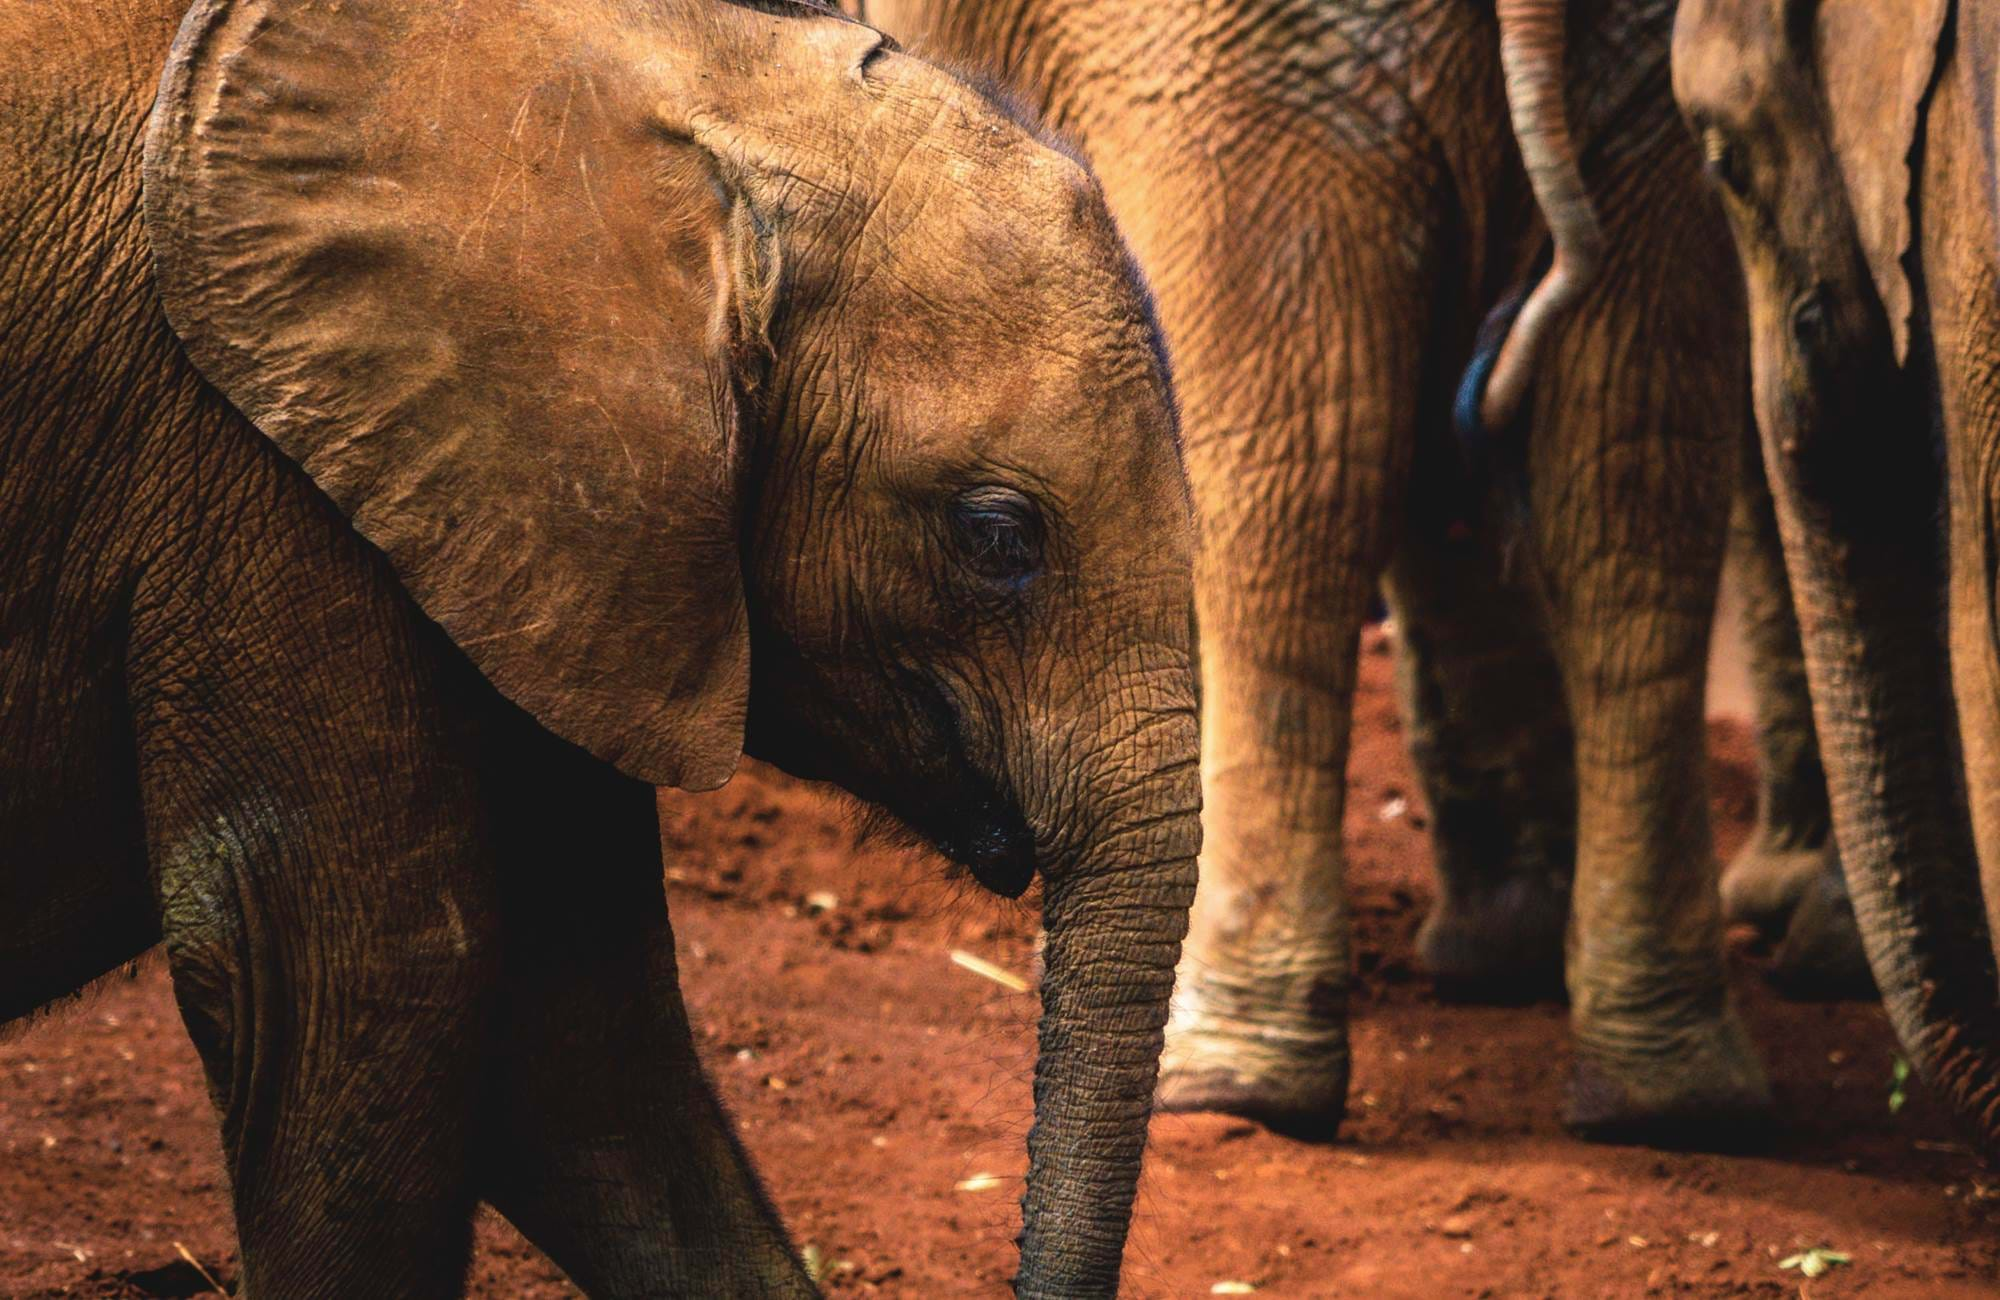 nairobi-kenya-sheldrick-elephant-orphanage-close-up-baby-elephant-cover